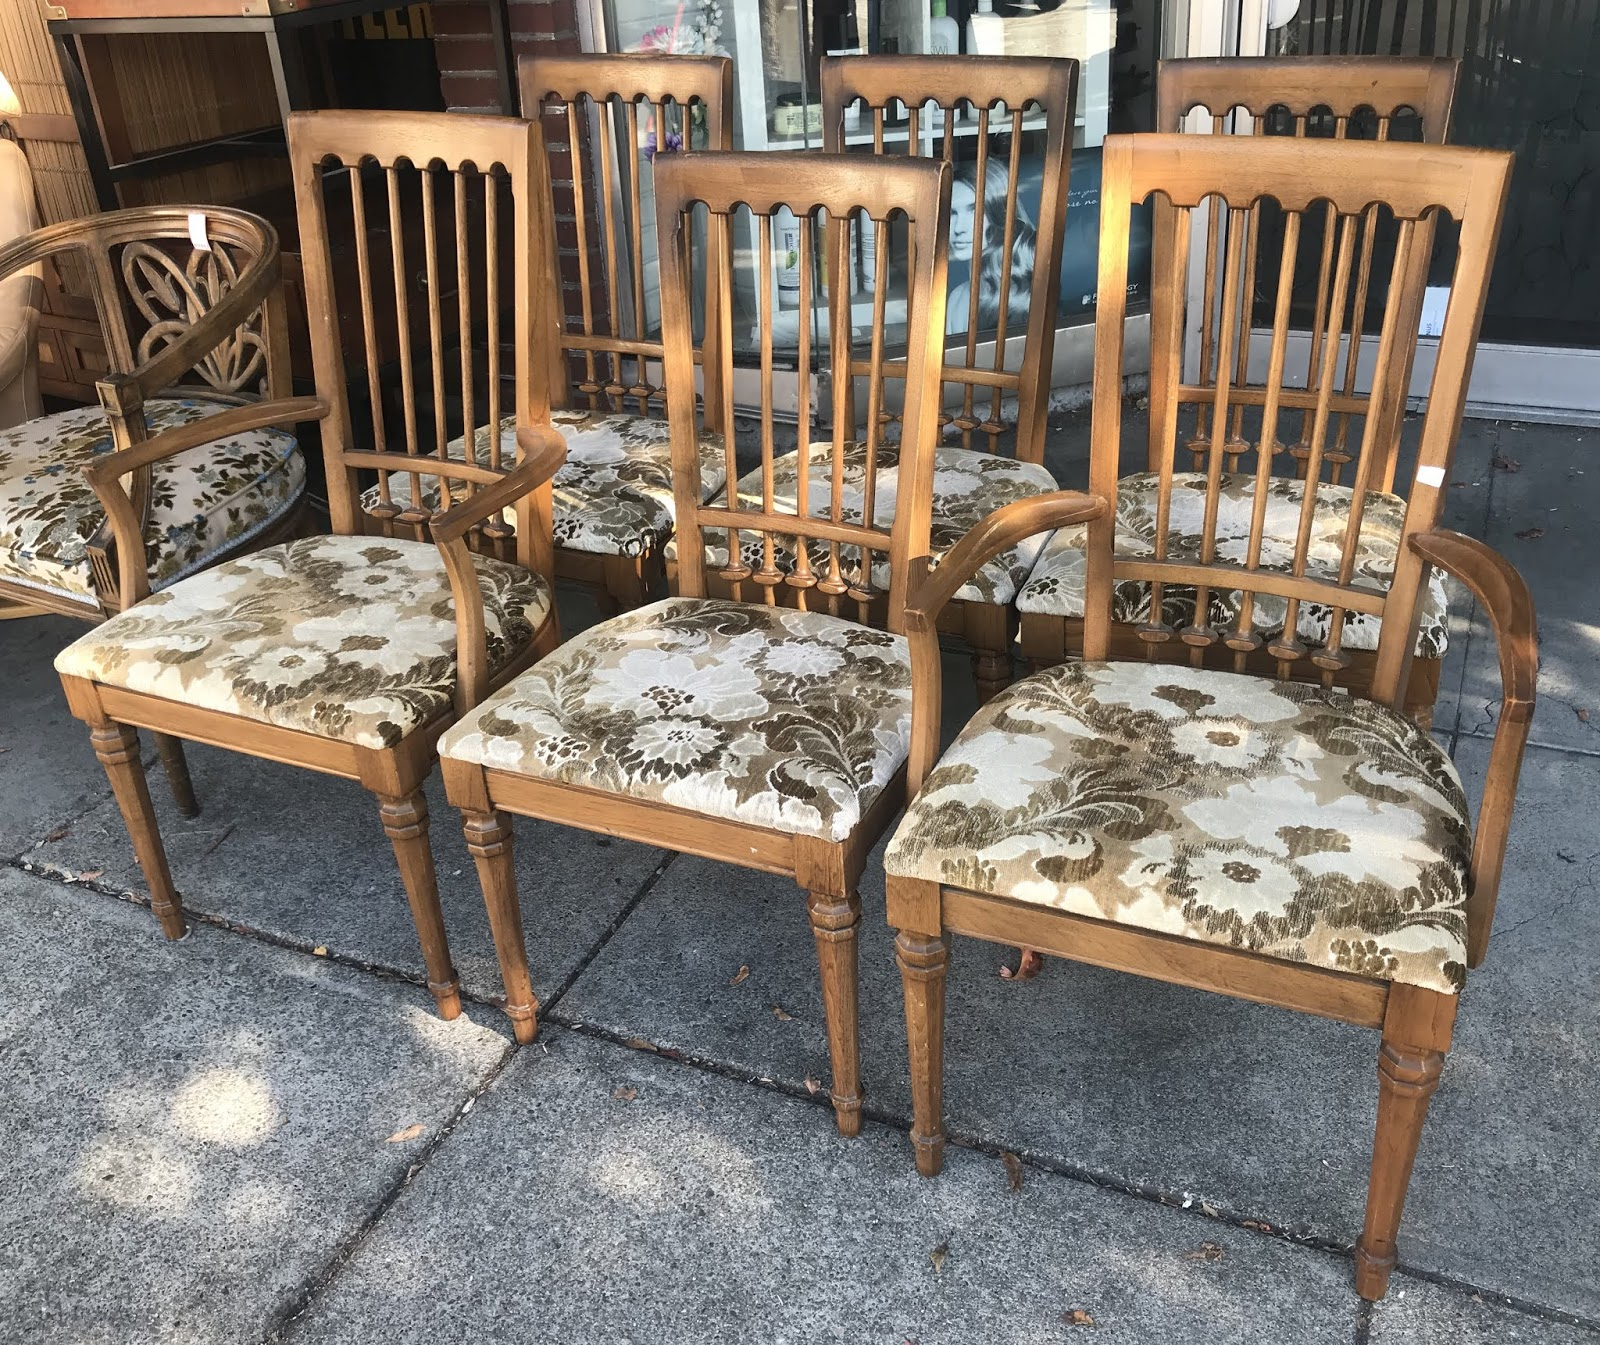 UHURU FURNITURE & COLLECTIBLES: ** BARGAIN BUY ** #20838